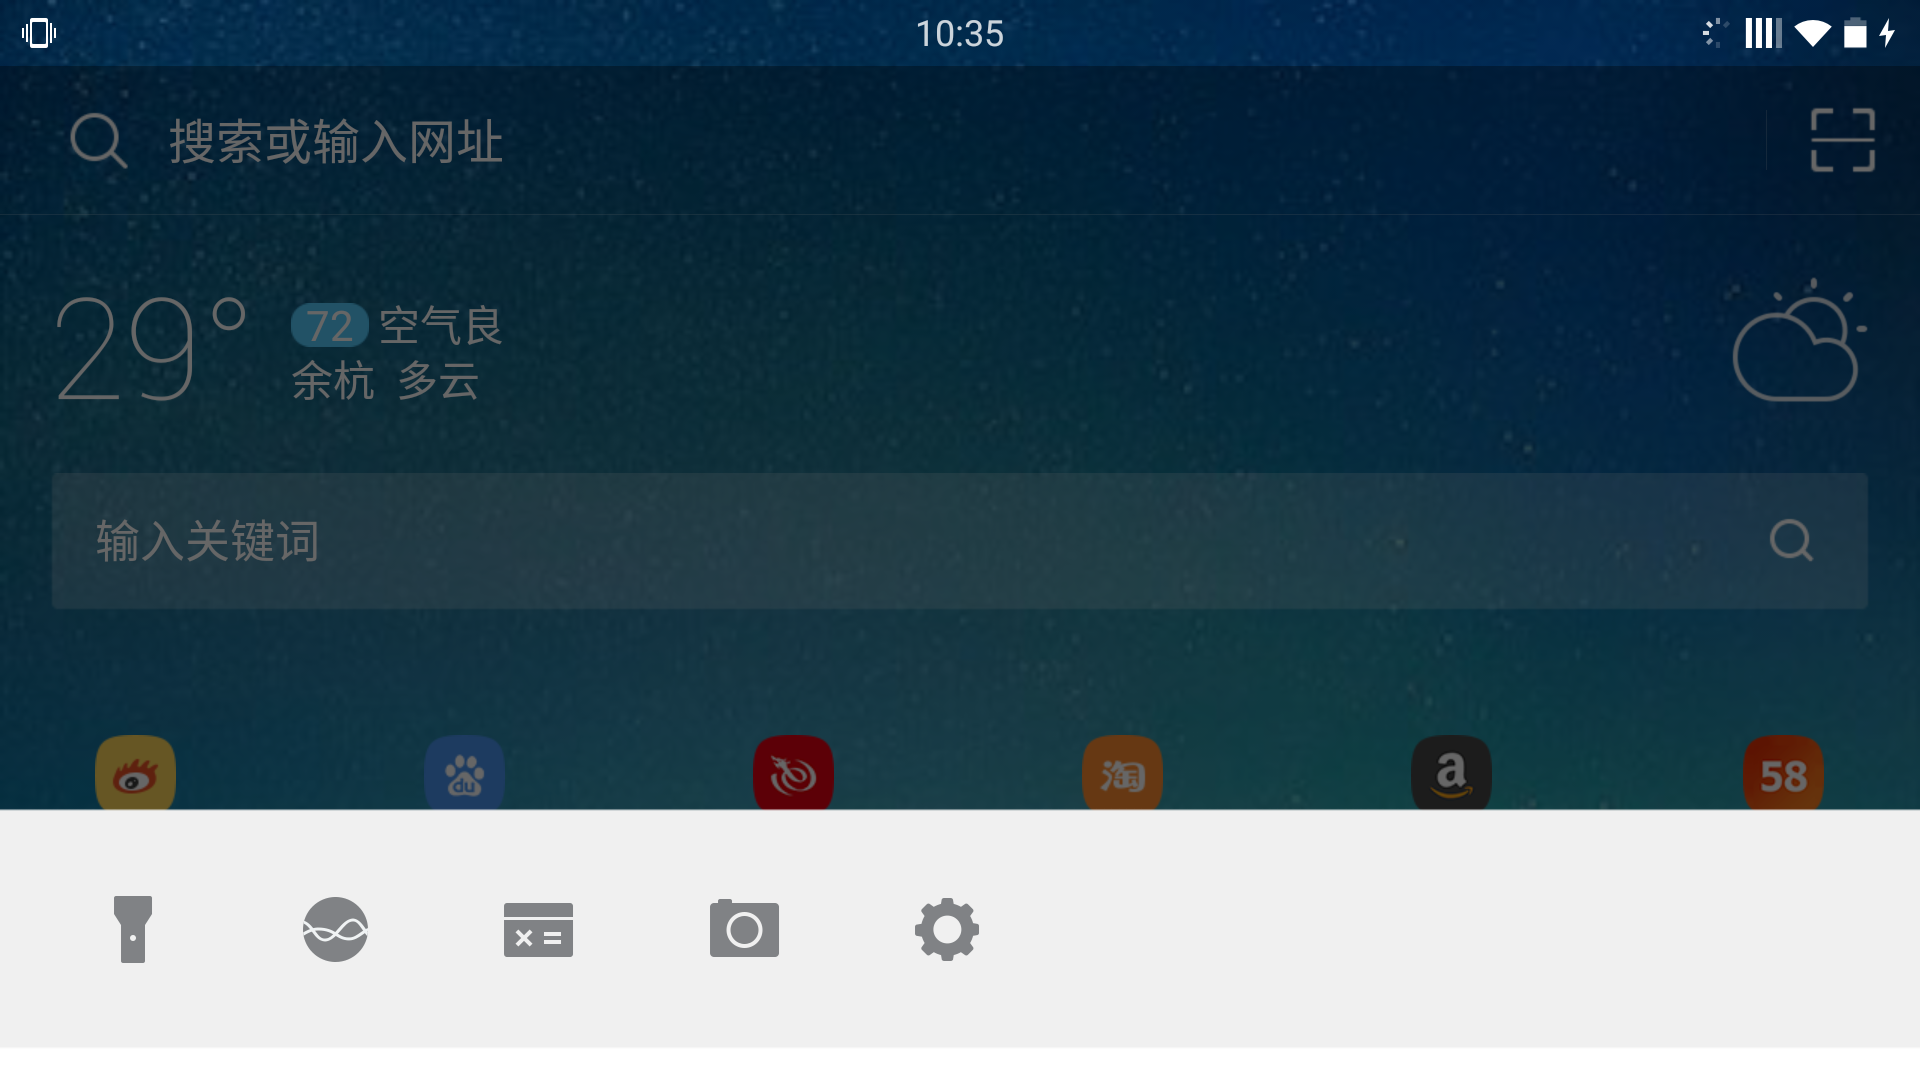 Screenshot_2015-06-06-10-35-42.png